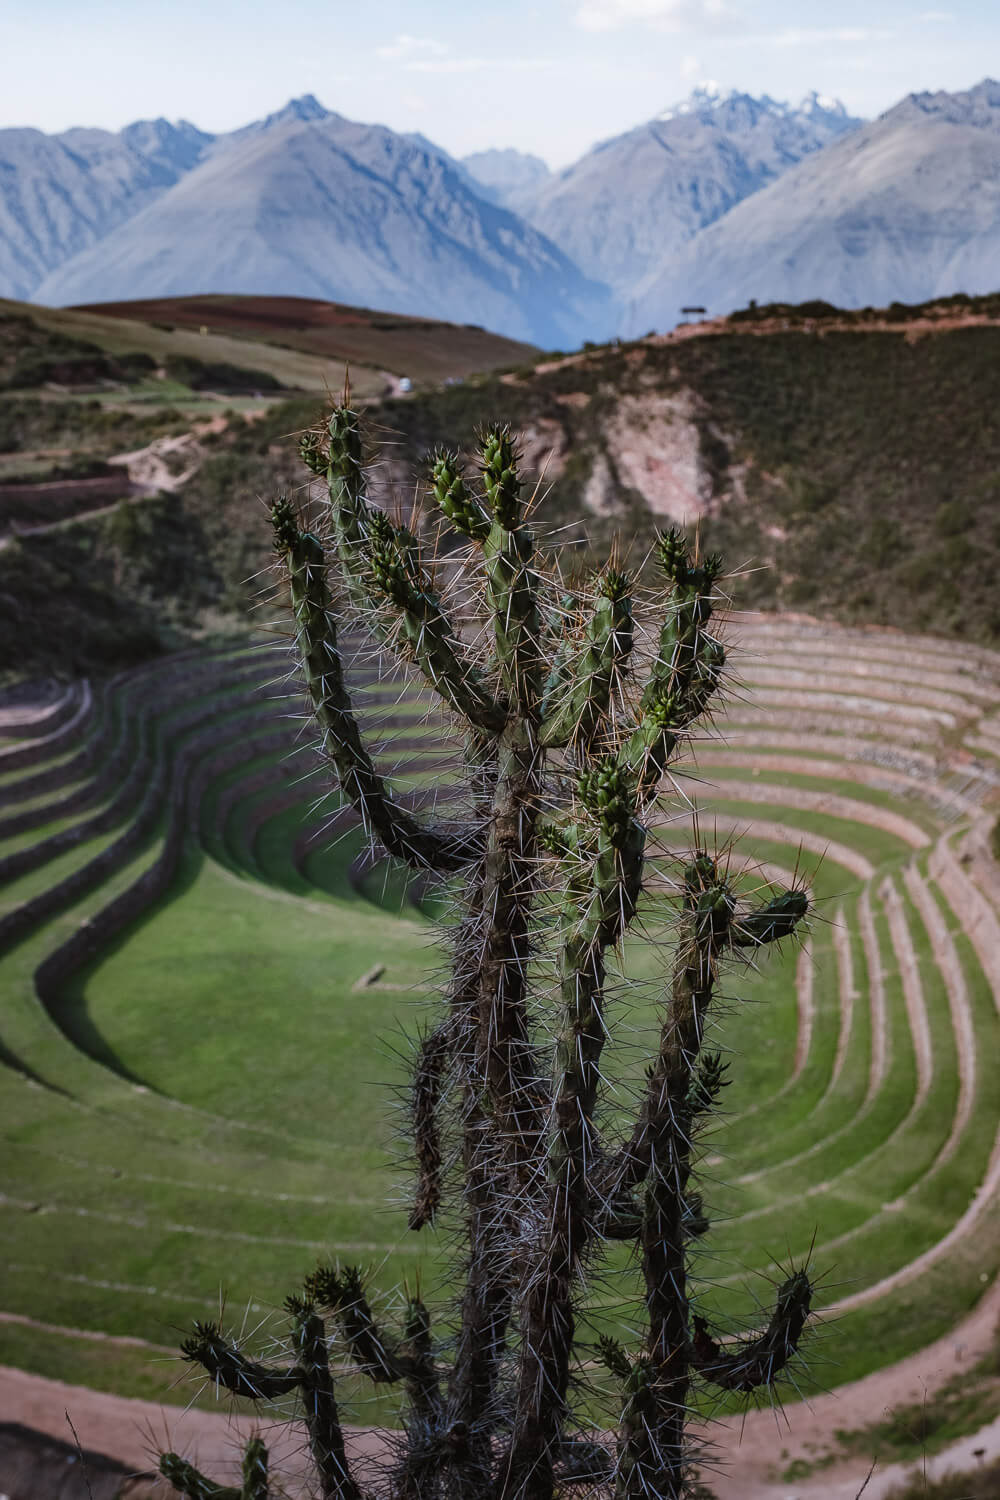 """Terraces of Moray in The Sacred Valley, Peru. Travel photography and guide by © Natasha Lequepeys for """"And Then I Met Yoko"""". #travelguide #photoblog #fujifilm #machupicchu #ValleSagrado #travel"""